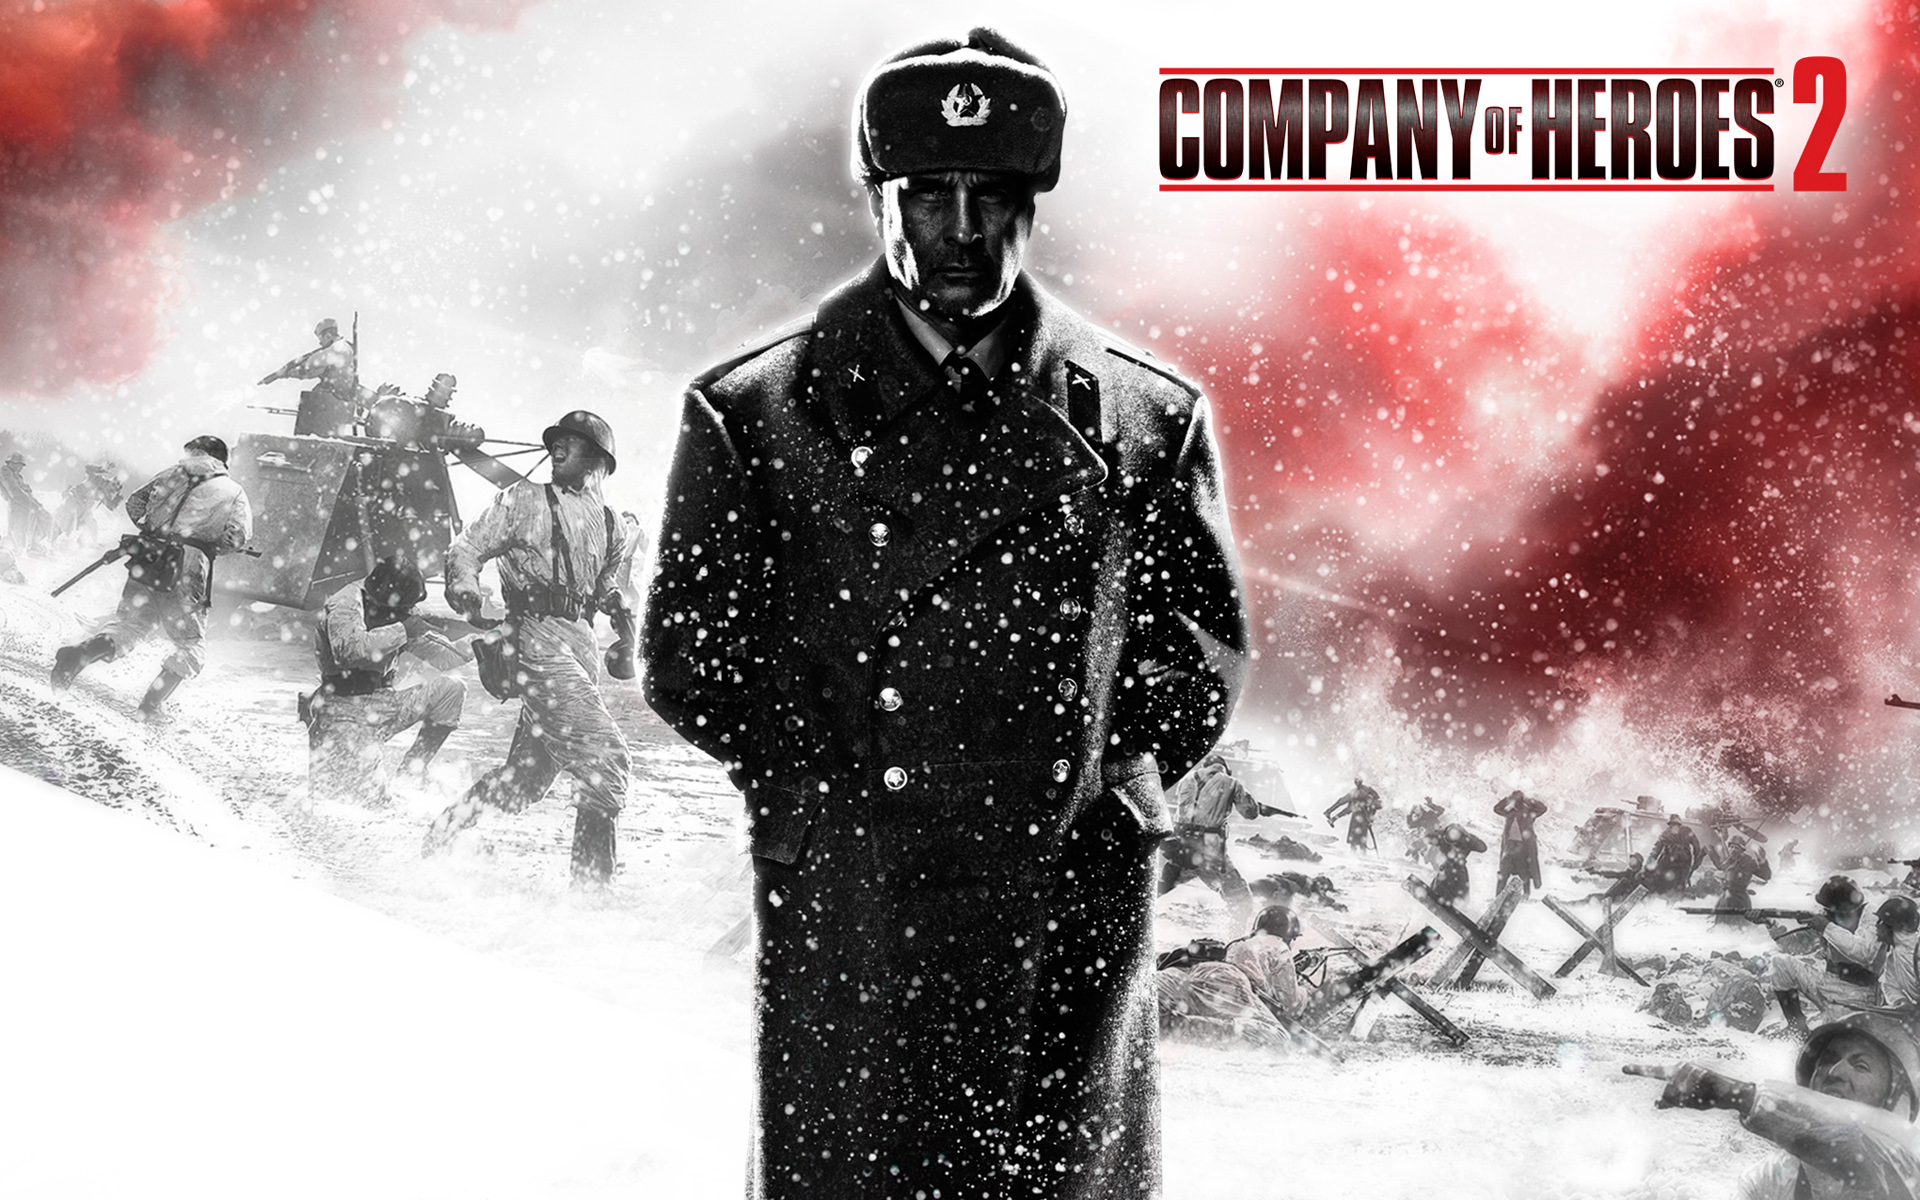 2013 Company of Heroes 2 Game 993.32 Kb